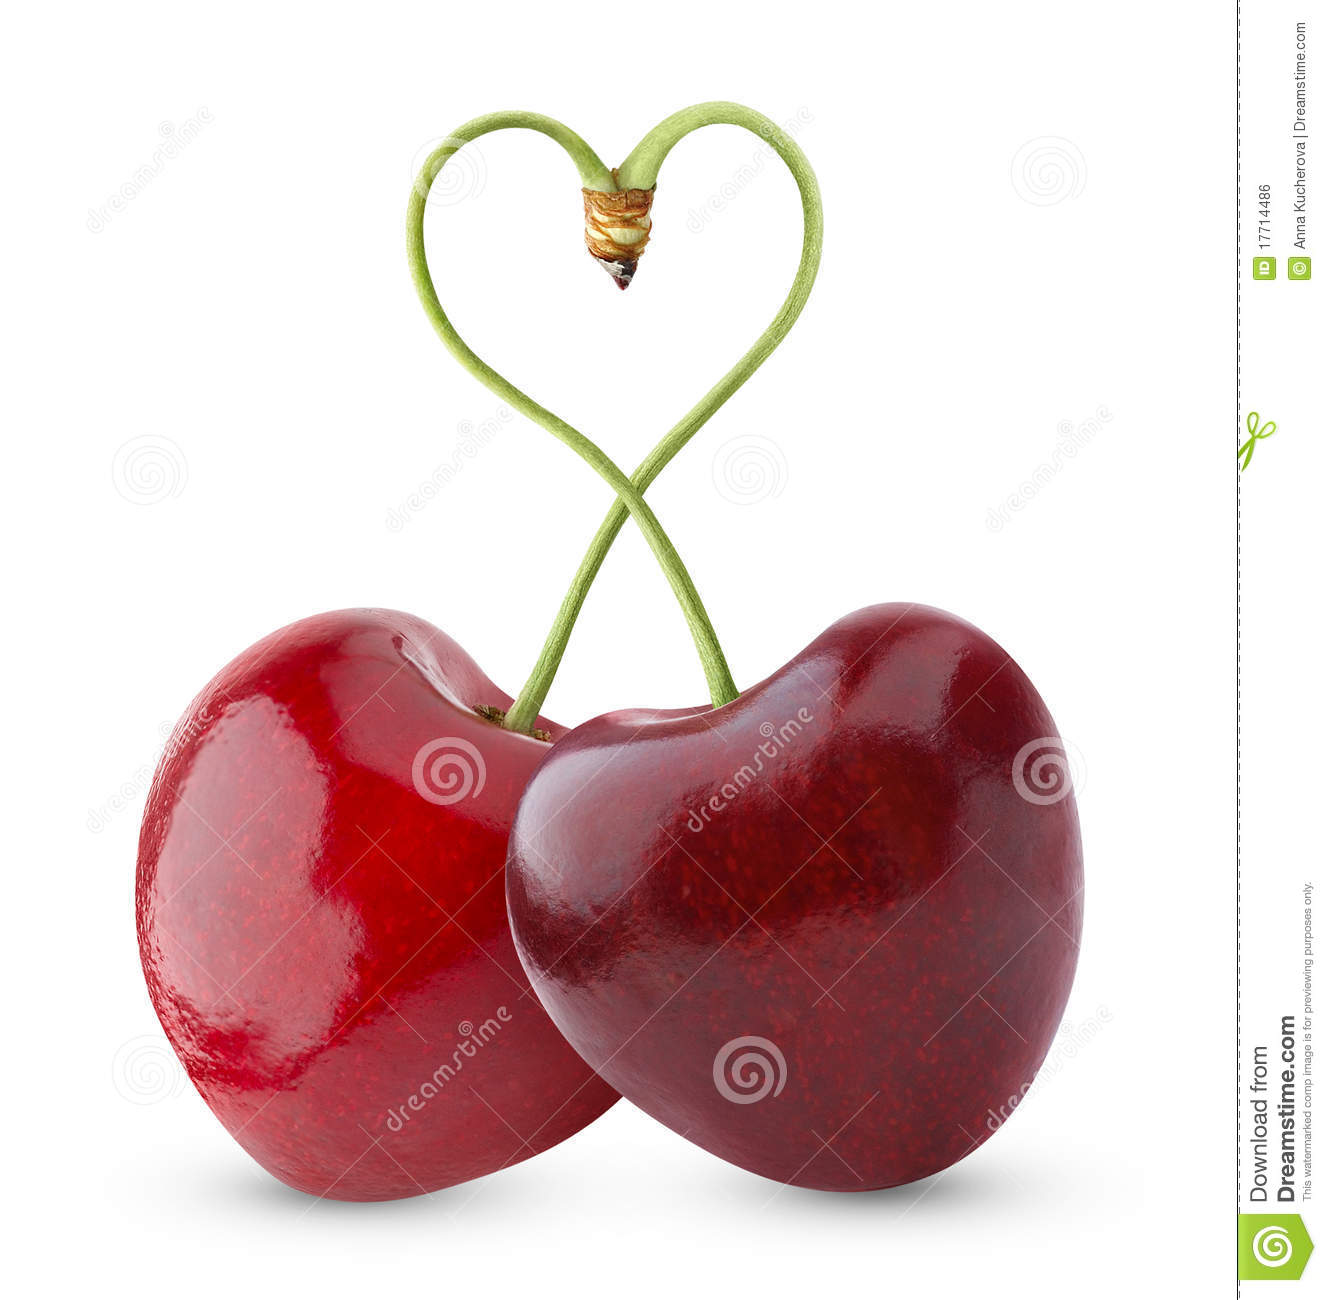 Cereja doce Heart-shaped